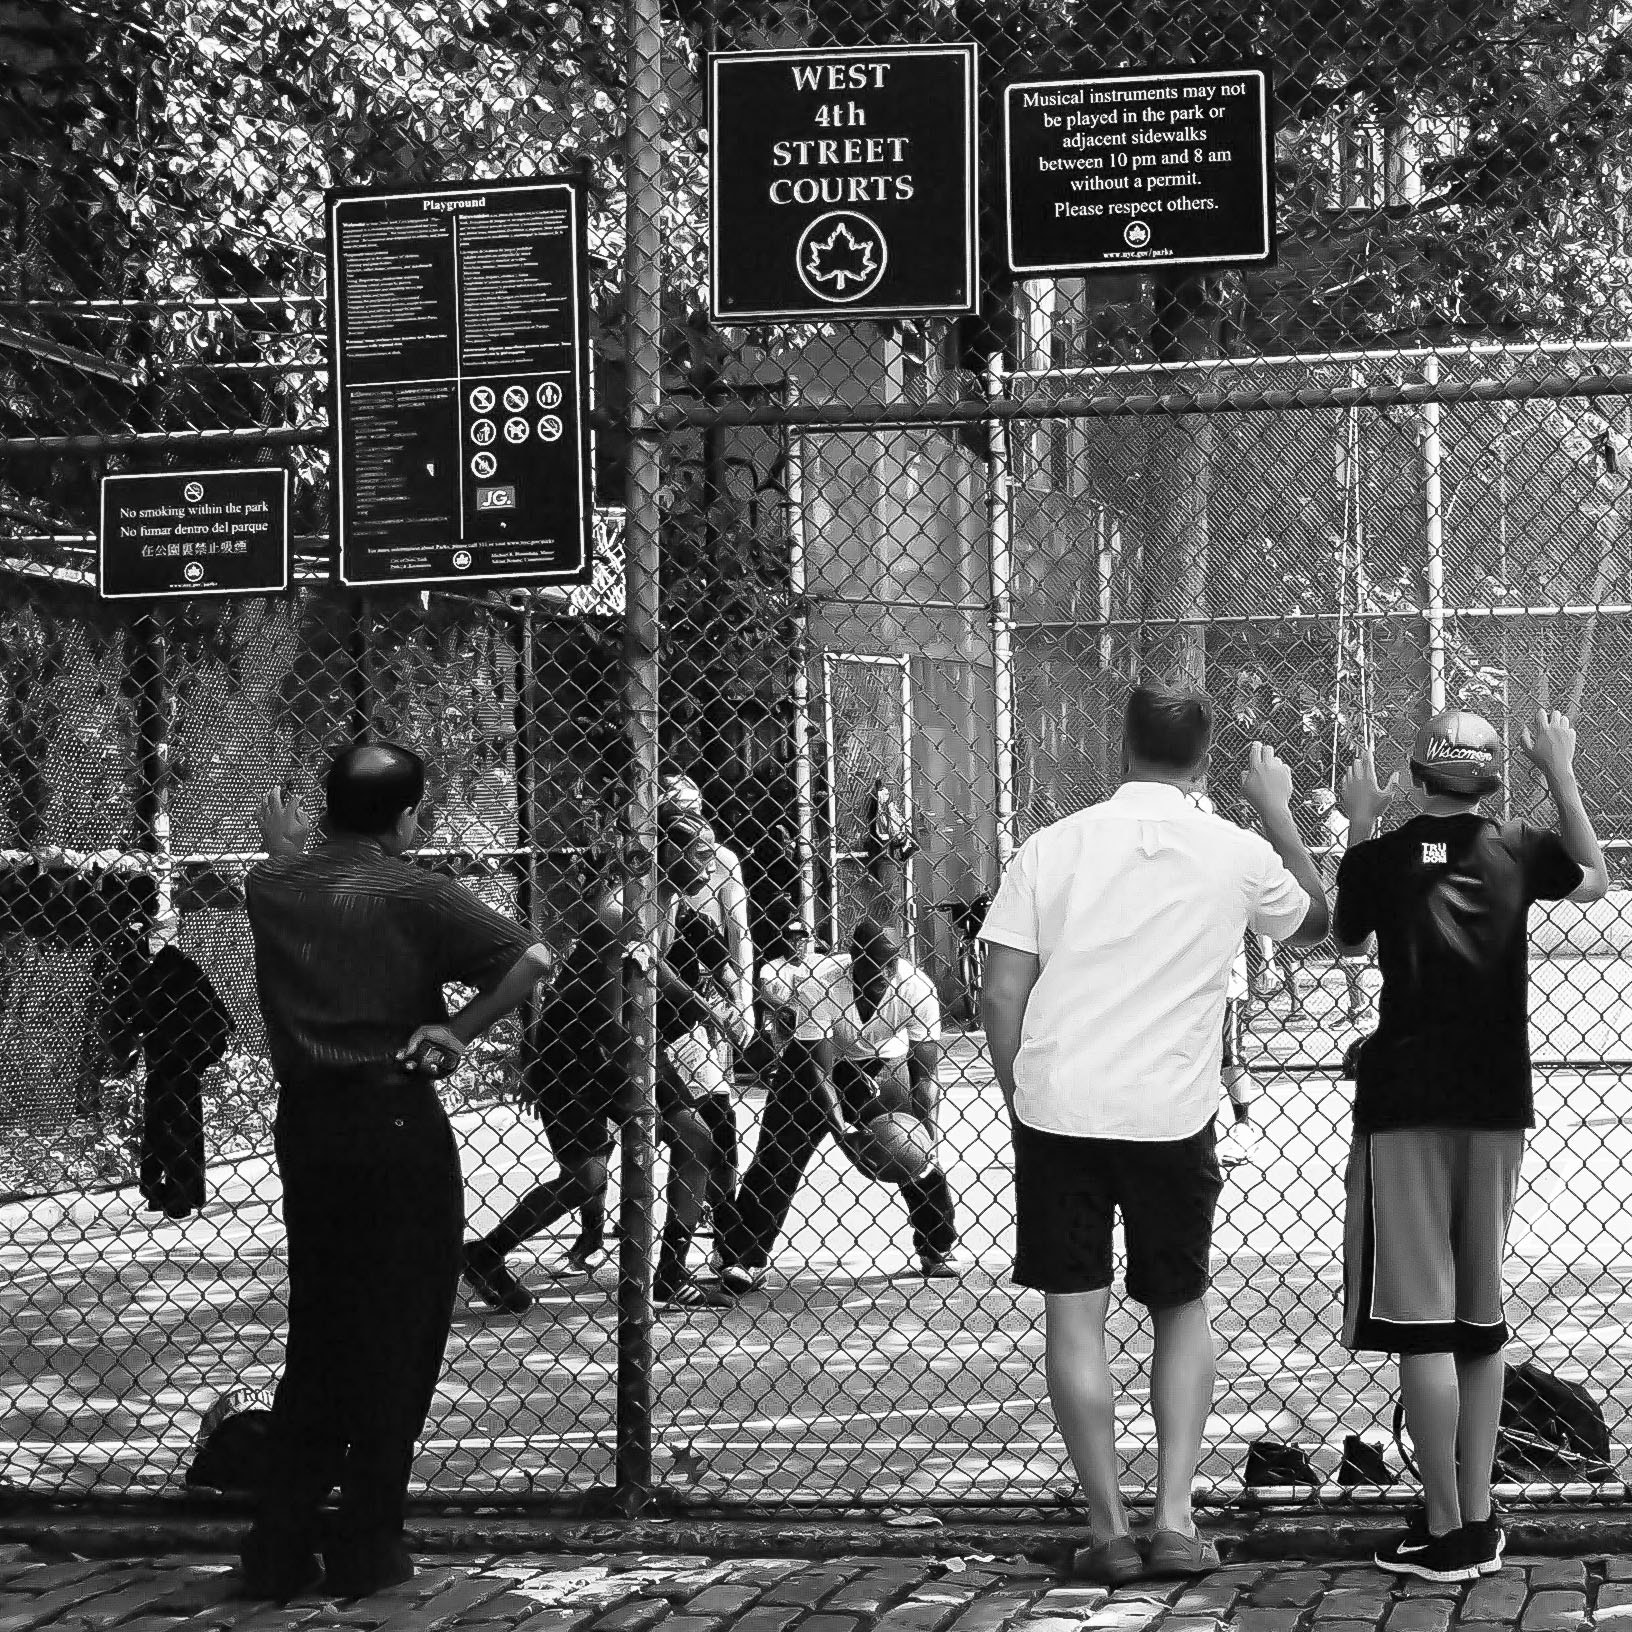 Photograph West 4th Street Spectators by PJ Resnick on 500px